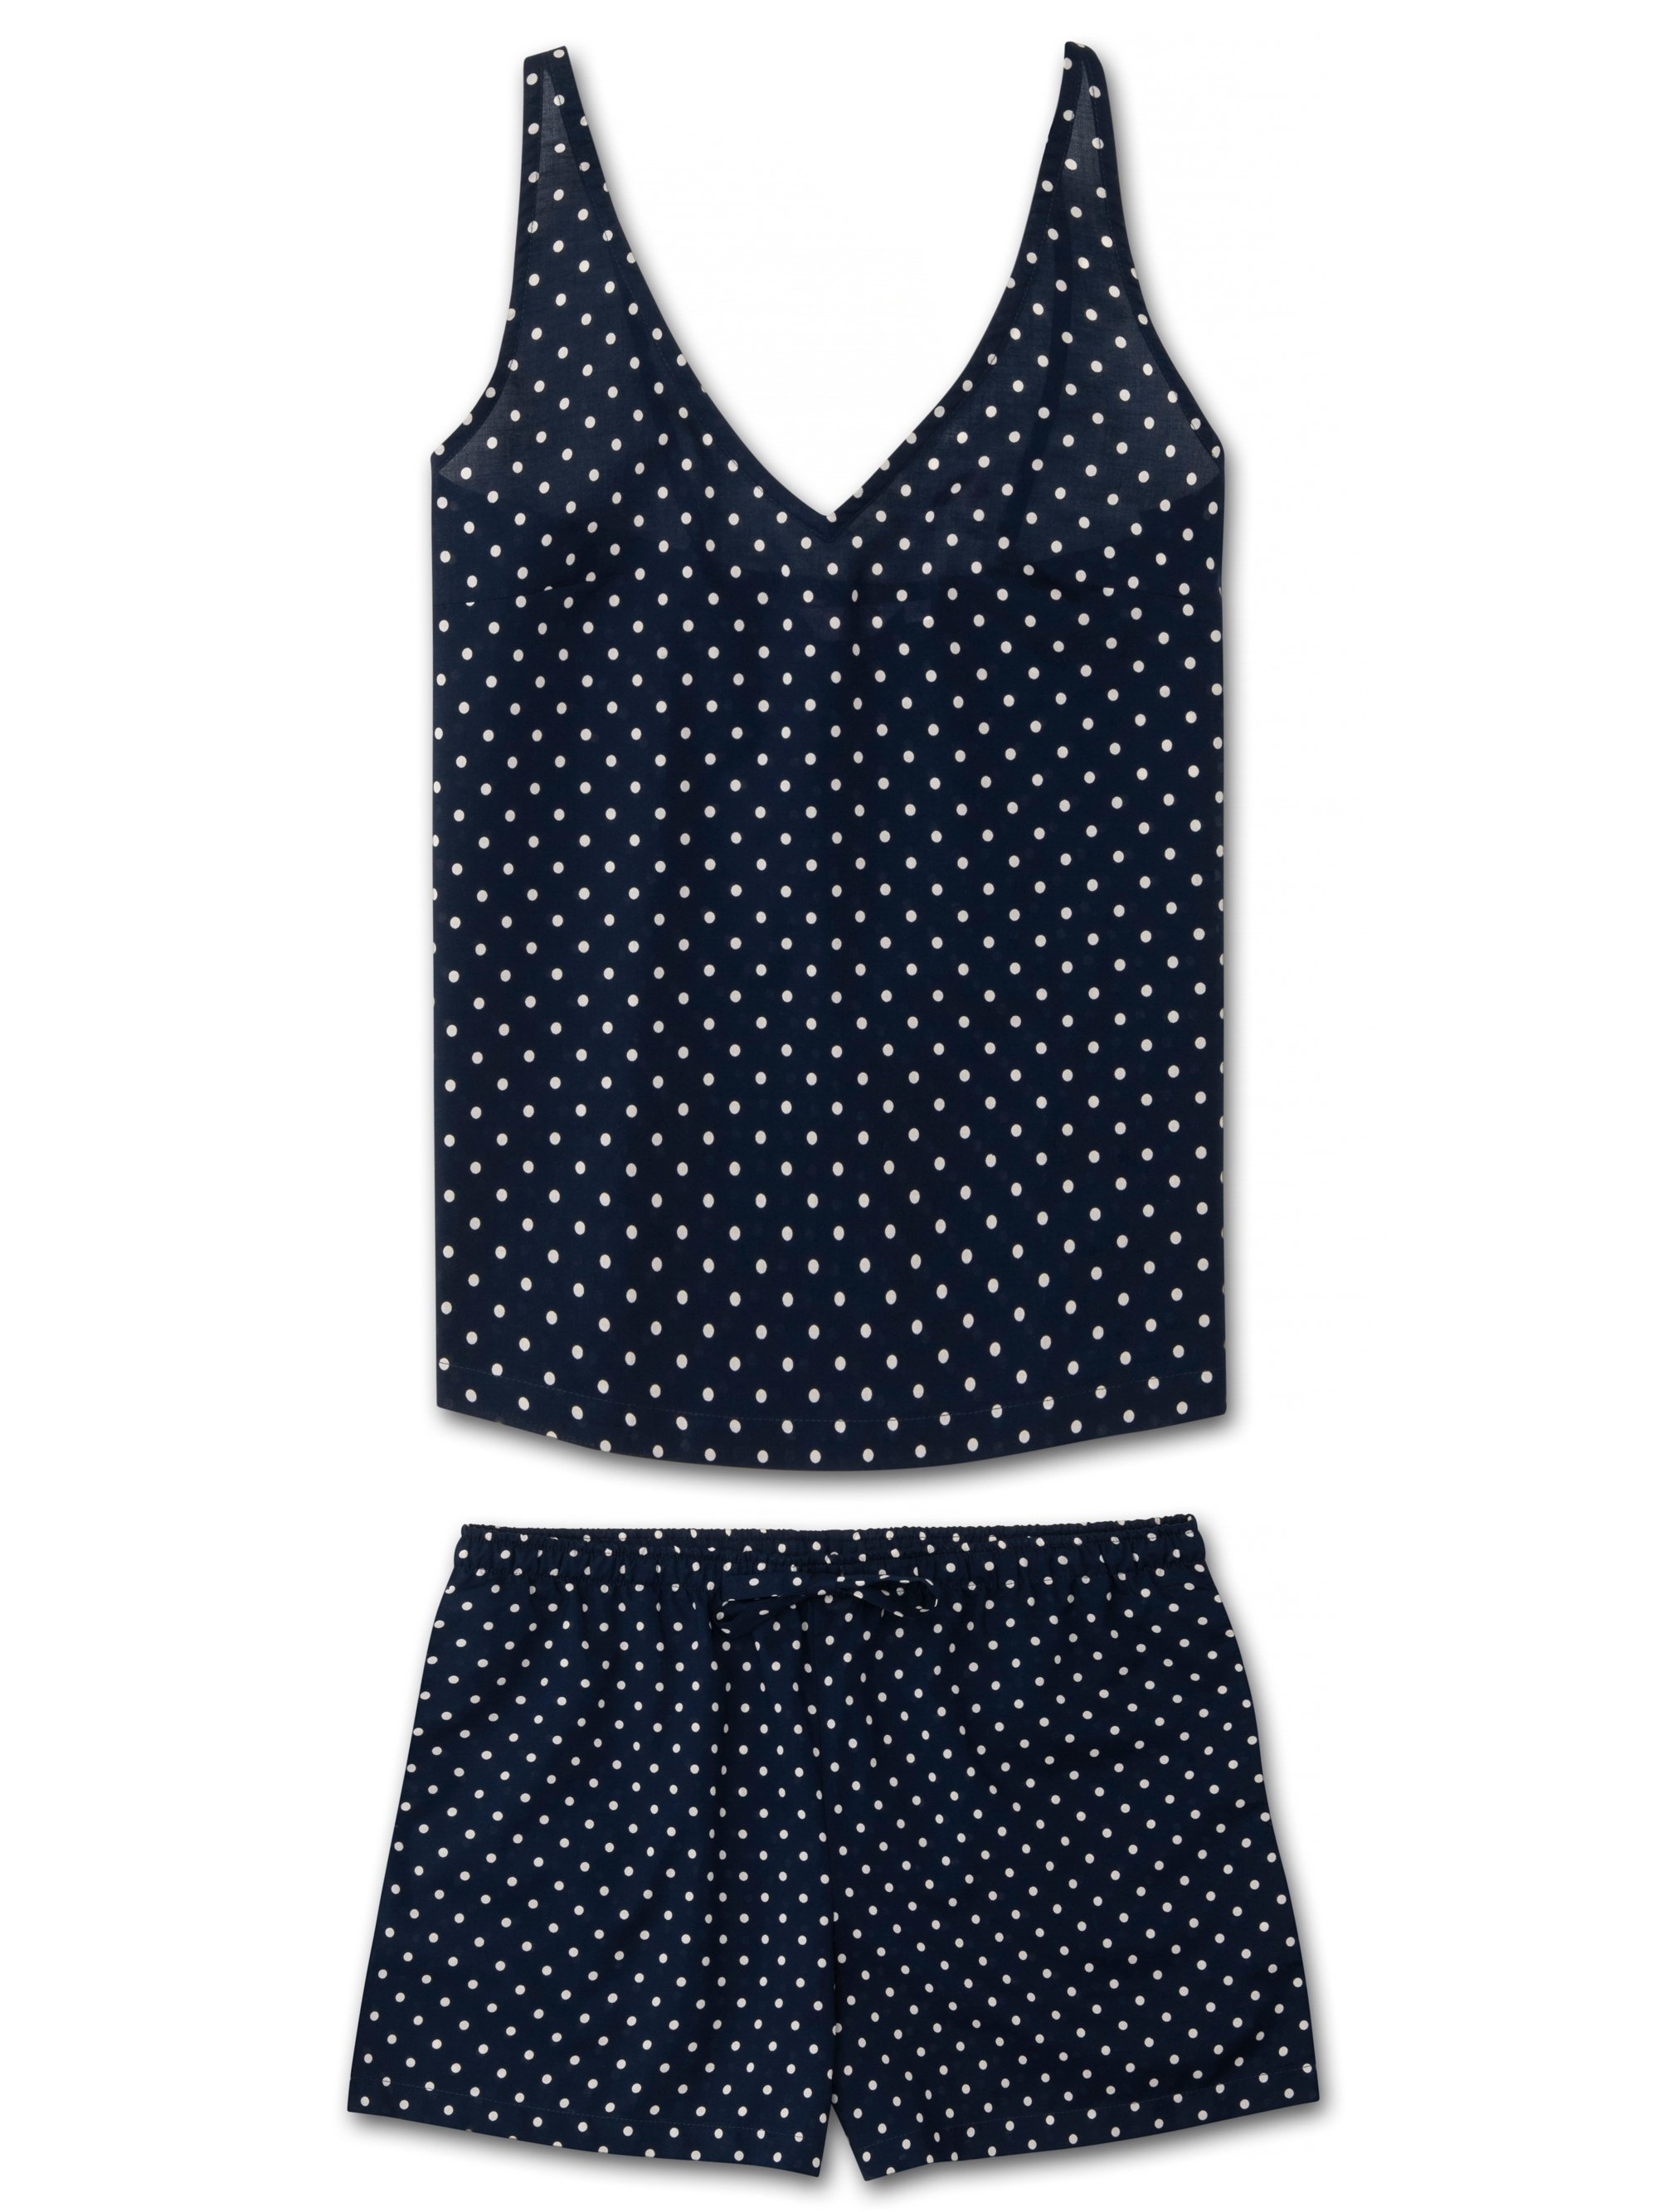 Women's Cami Short Pyjama Set Plaza 60 Cotton Batiste Navy